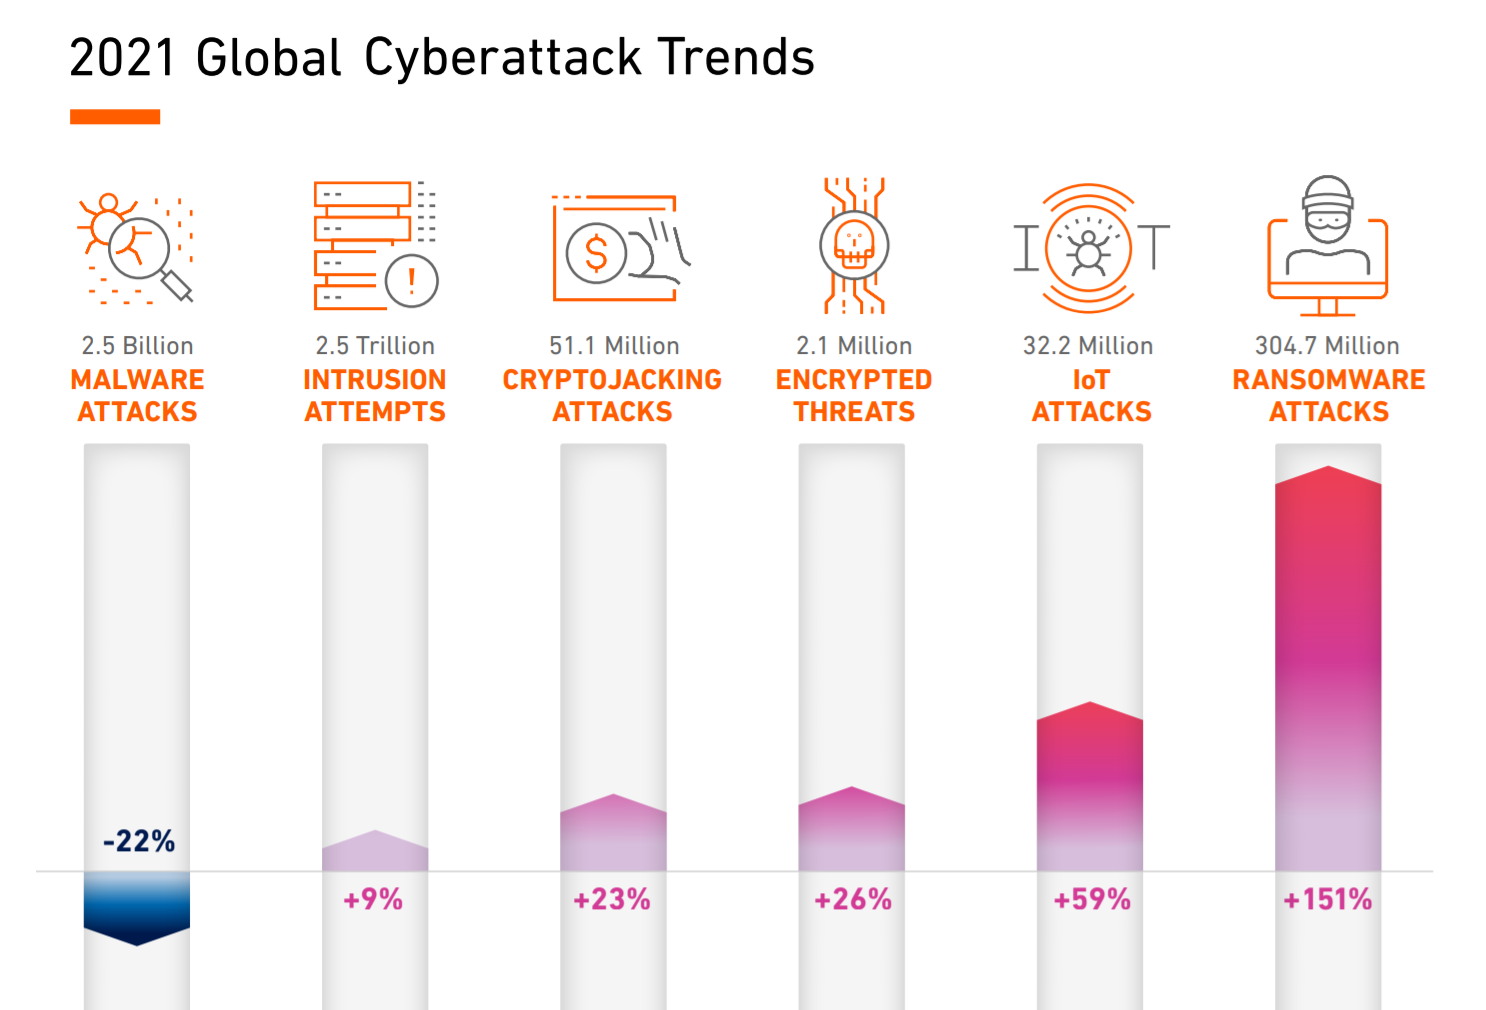 2021 Global Cyberattack Trends